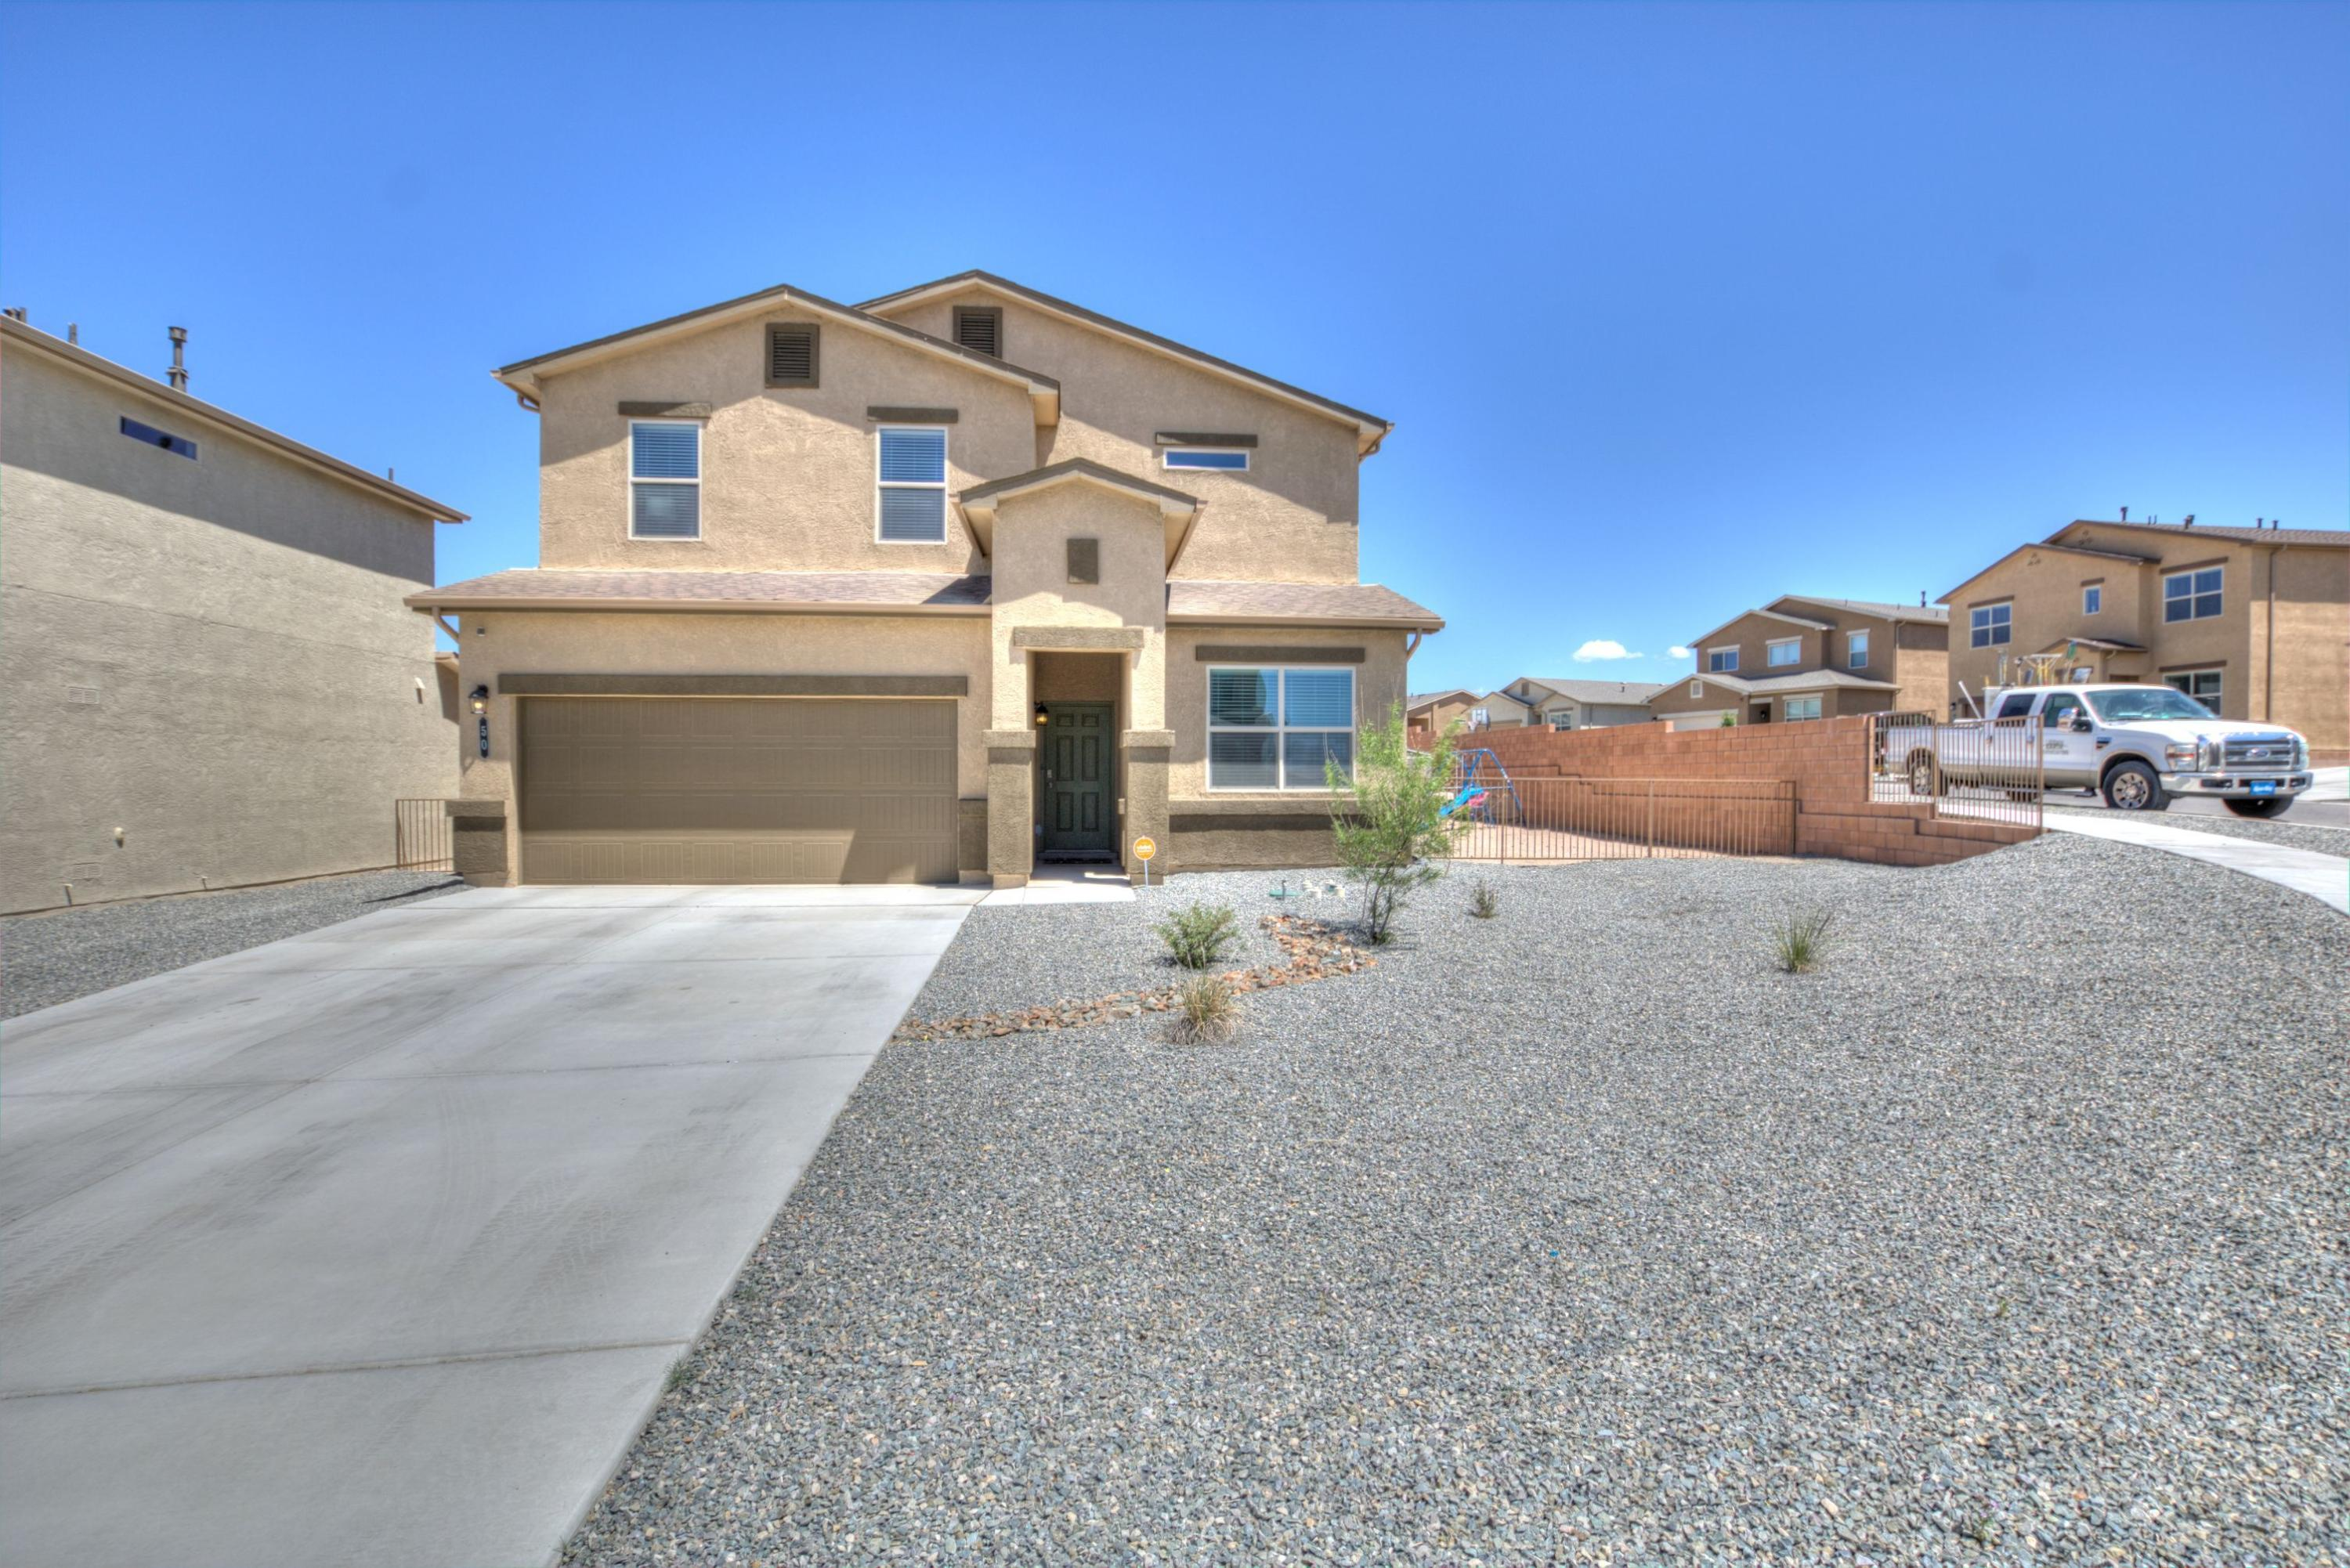 This NEARLY NEW home boasts one of the most sought after floor plans made by D.R. Horton Homes! It is located on a scenic corner lot in the master planned community of Eastland Hills. Kitchen boasts a large island, STAINLESS STEEL APPLIANCE PACKAGE, and opens up to the living room and covered patio - perfect for entertaining! Laundry room is outfitted with like new WASHER AND DRYER. Oversized loft is ideal for a game room or second living area, all bedrooms are bigger than average, and the huge Master Bedroom will comfortably fit a King Size bed and bedroom furniture. Make an appointment to see it today!